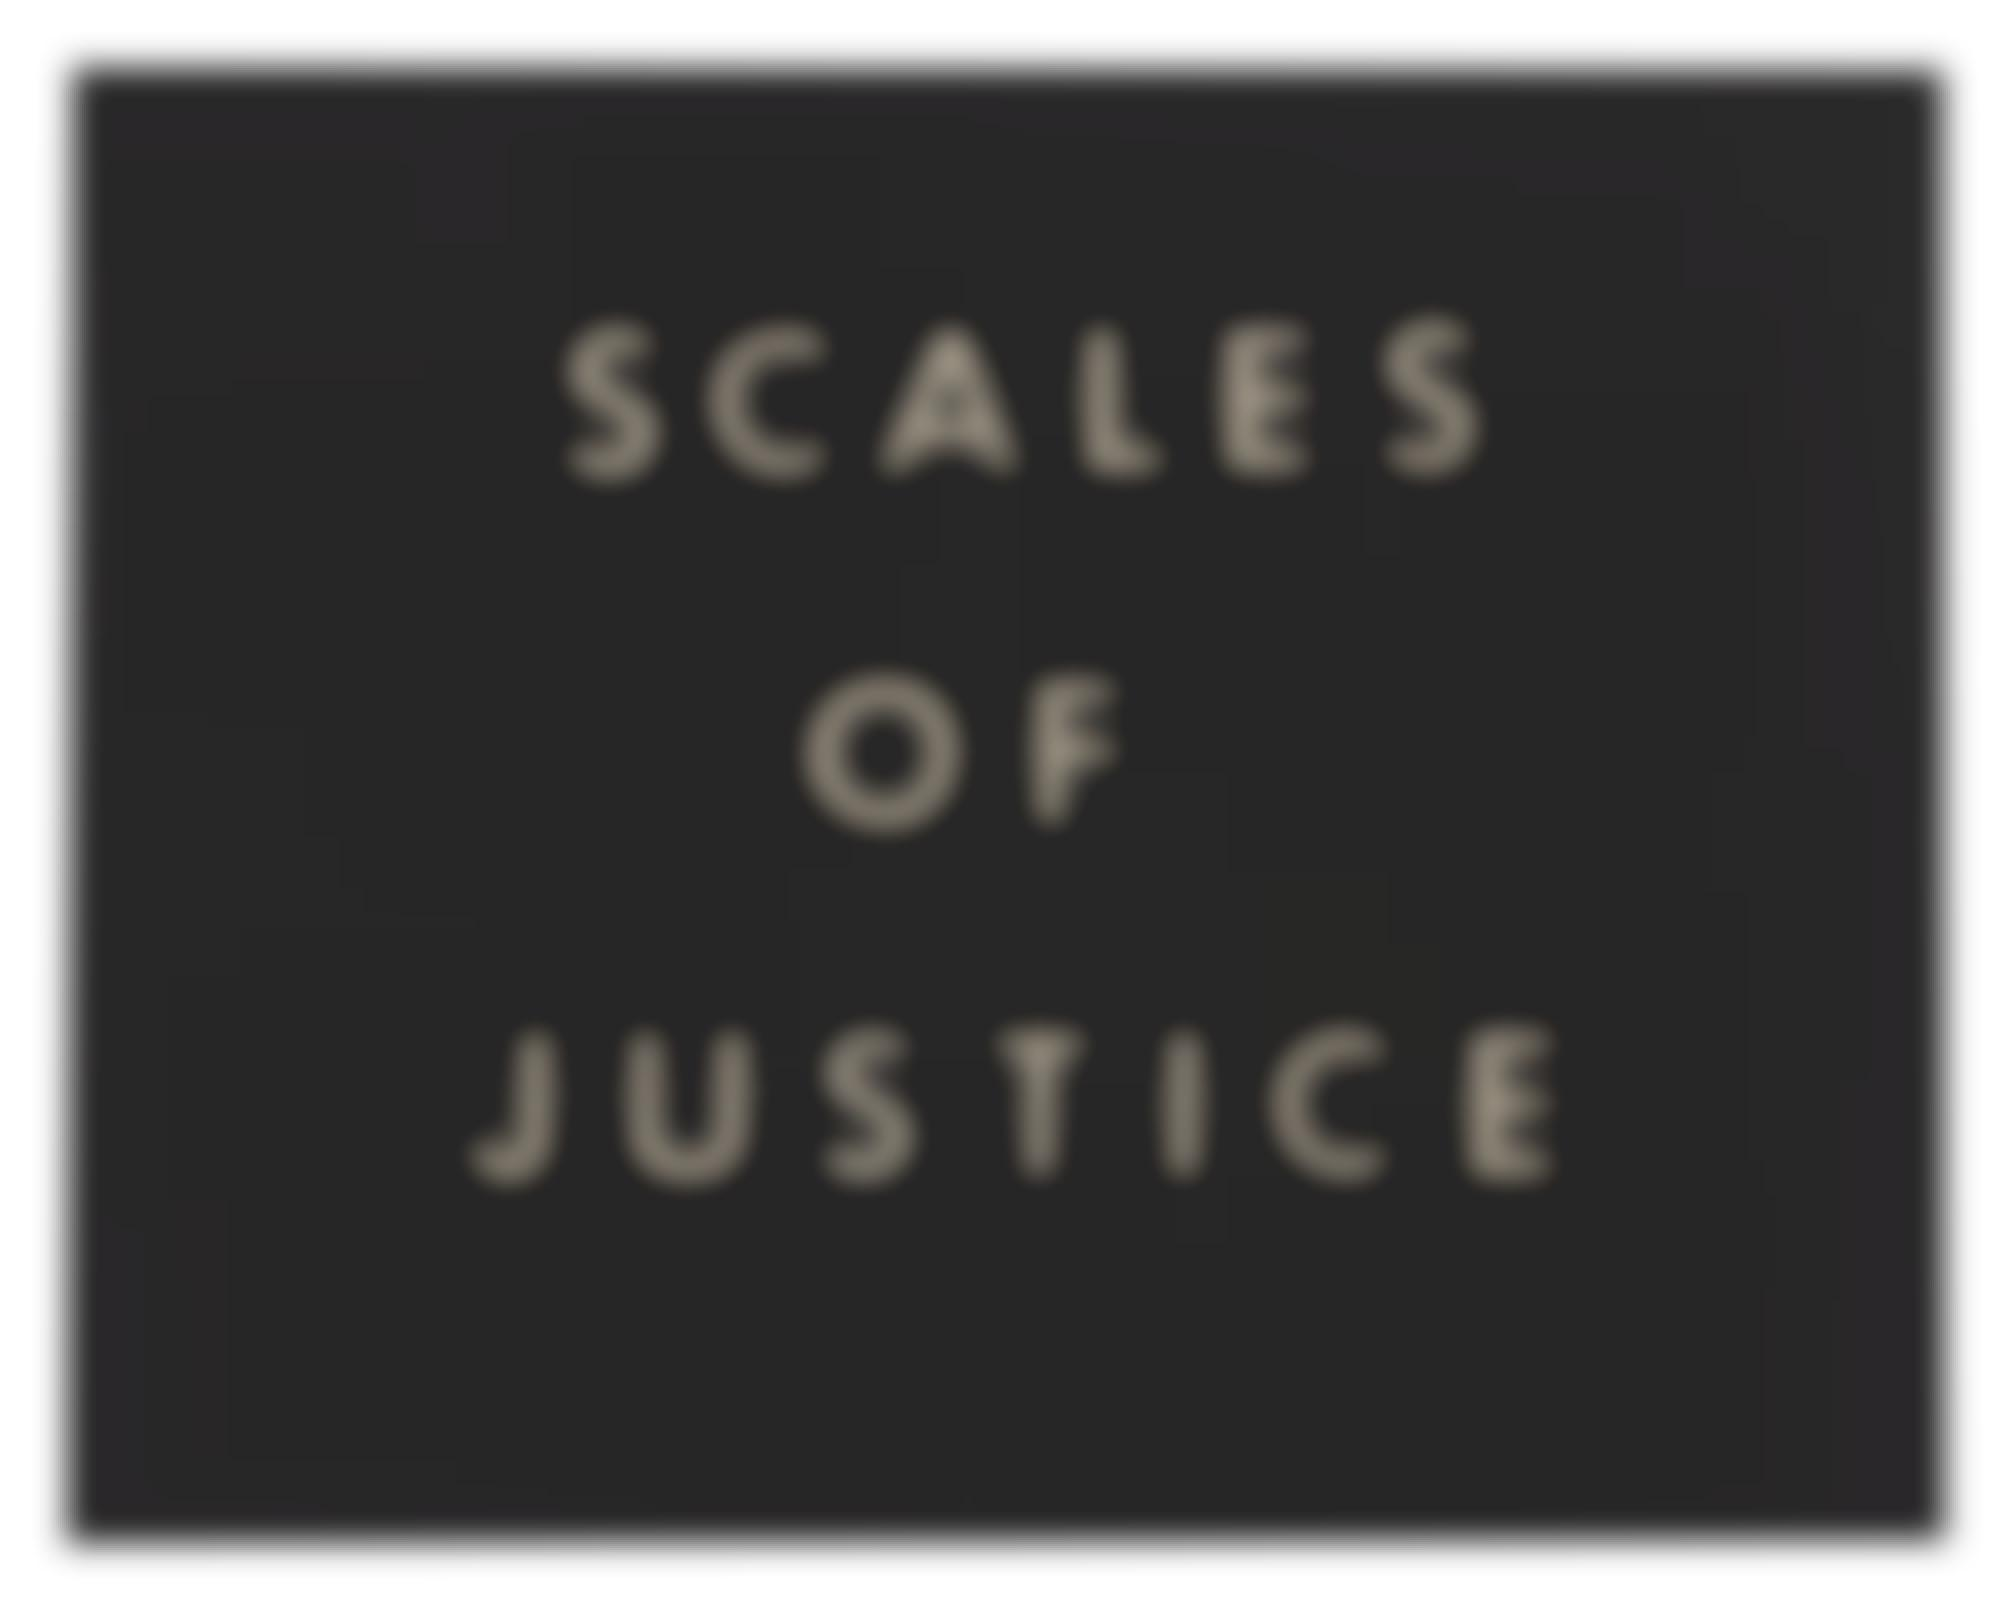 Ed Ruscha-Scales Of Justice-1975